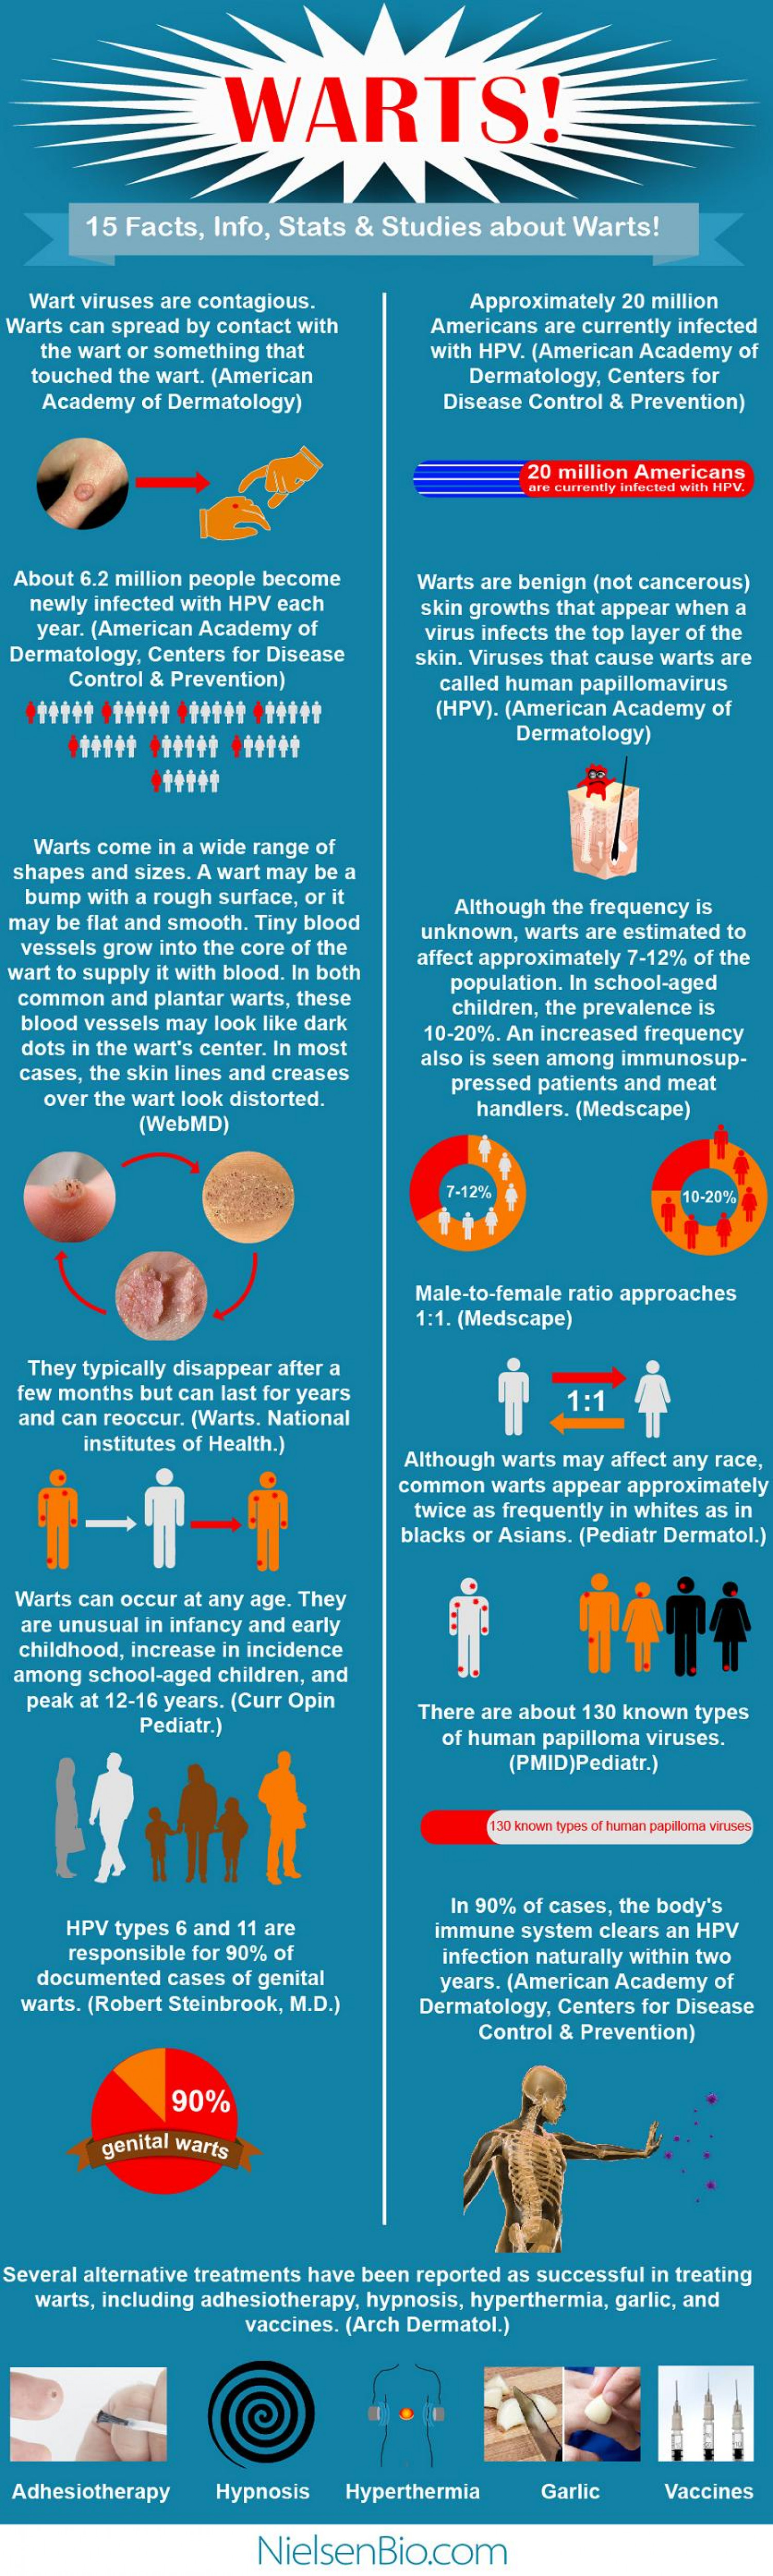 Warts!!! Infographic